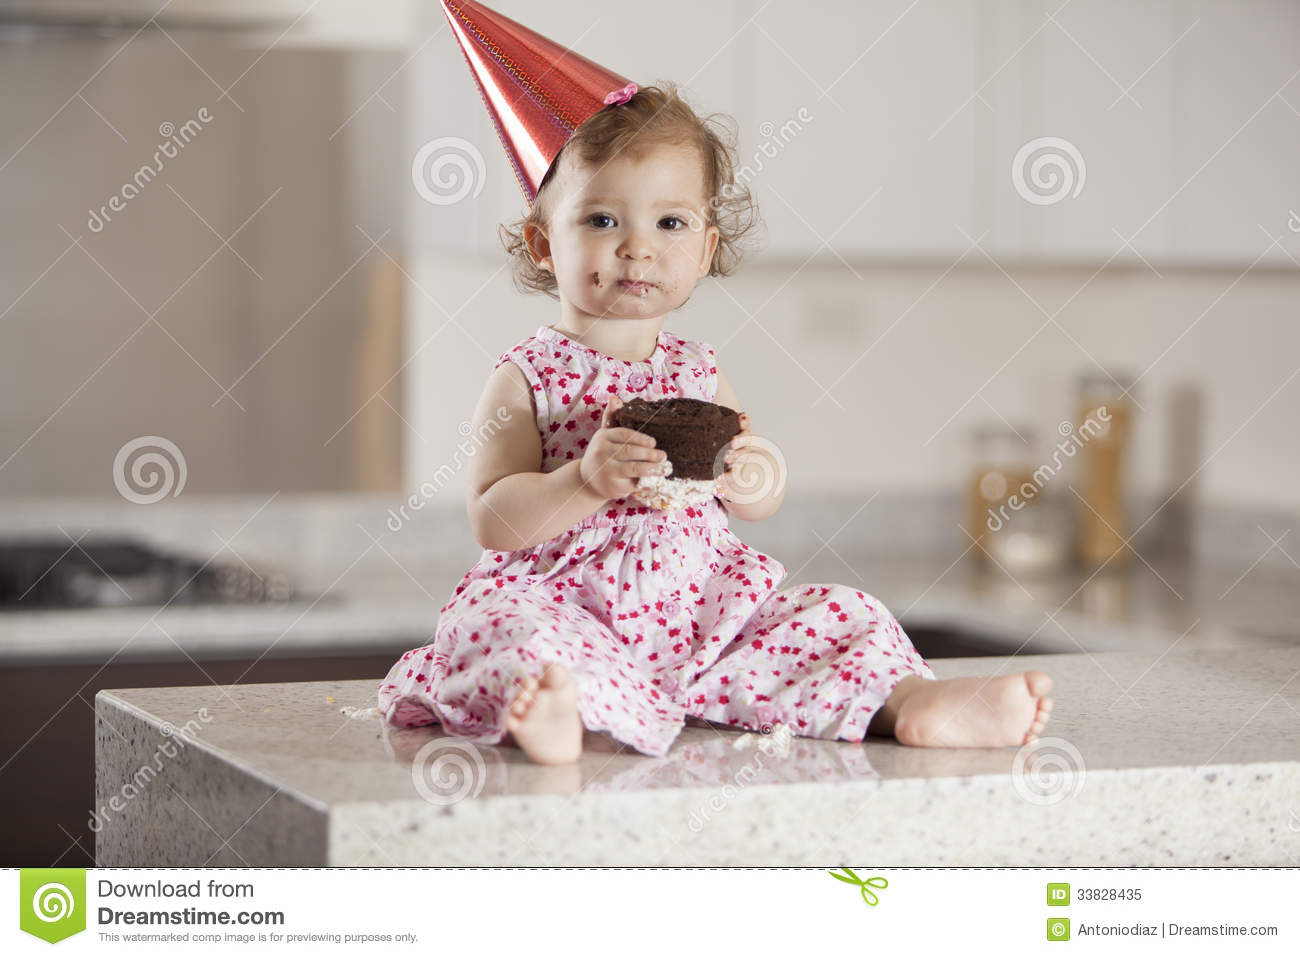 cute baby girl eating cake stock photos - download 821 images